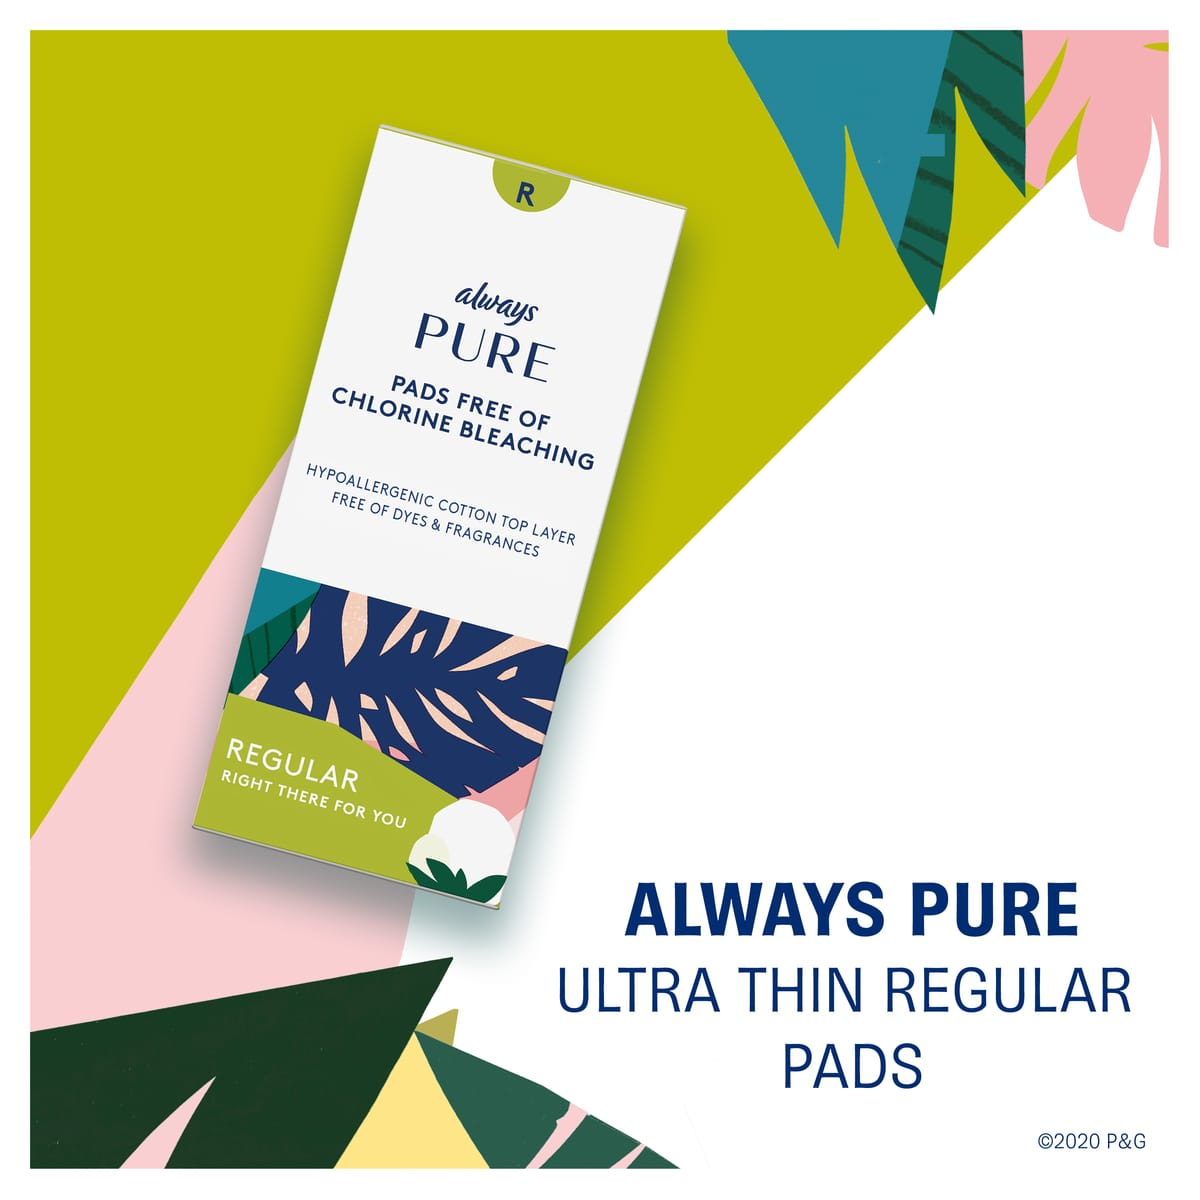 Always Pure Ultra Thin Regular Pads